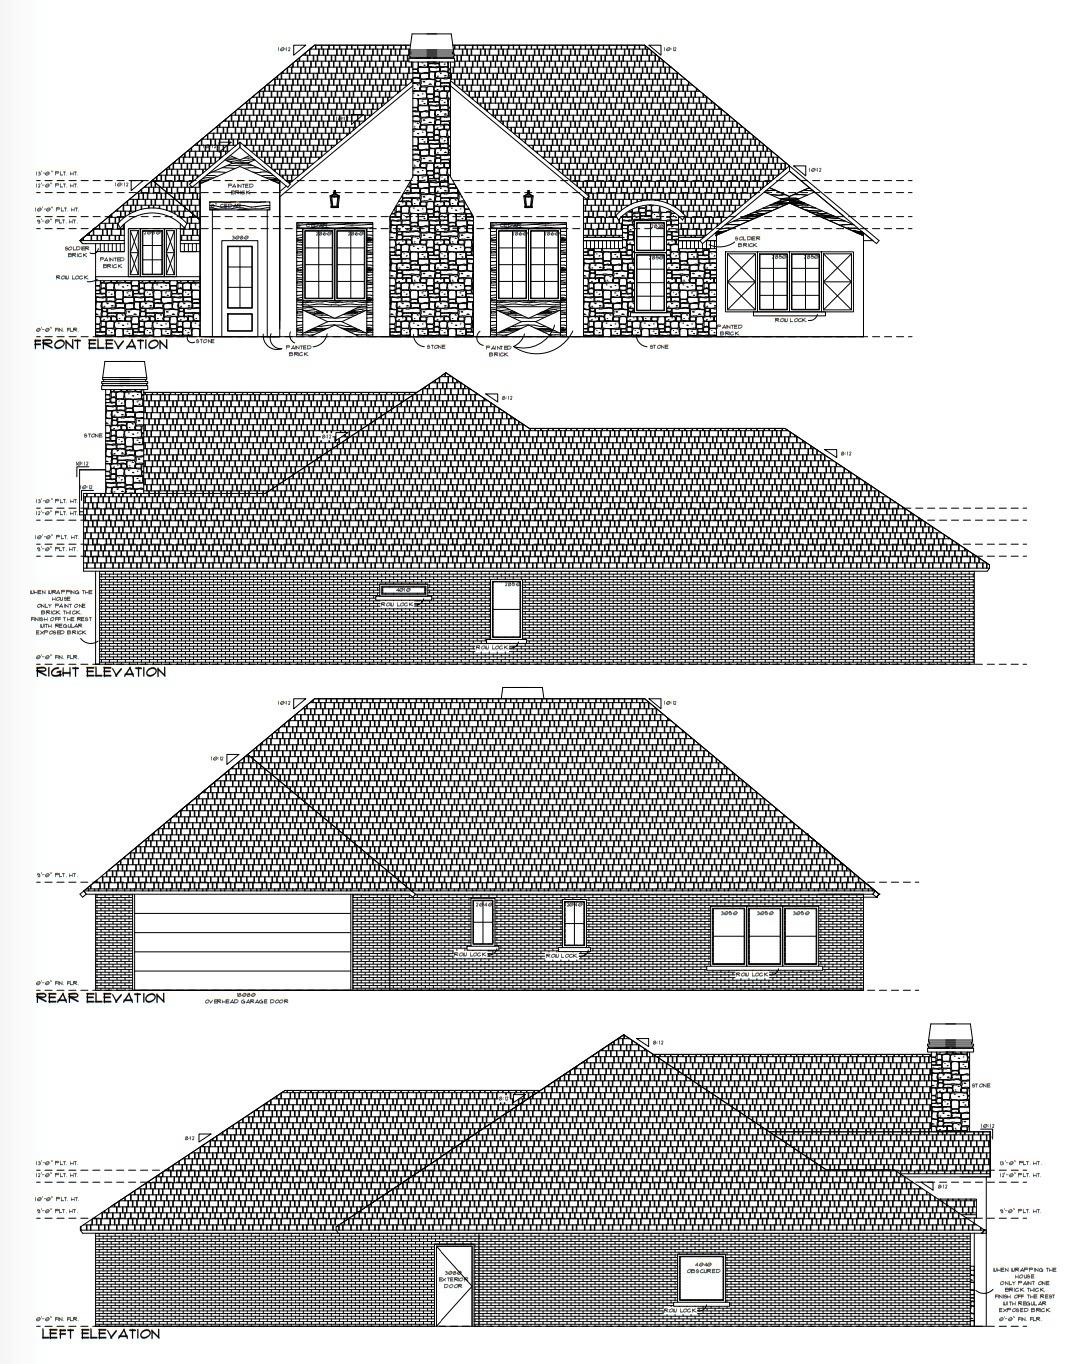 Just the place for your family to call home!  New construction in Stratford Pointe built by Johnny Mosser. You'll love all the neutral colors throughout the home. Open concept living space with 12 ft ceiling. Kitchen will have painted white cabinets with Quartz counter tops, stainless steel appliances and a large pantry with a barn door. Vinyl plank flooring in all common areas, carpet in bedrooms and tile in baths. Living area will have some built ins for storage with the focal point being the floor to ceiling stone fireplace. Landry room with storage, sink and extra freezer space. mud area upon entering from the 2 car garage. This home has foam insulation for energy efficiency.   Large covered back patio great for entertaining. This great home is located on a cul-de-sac and looking to be complete at the end of July.